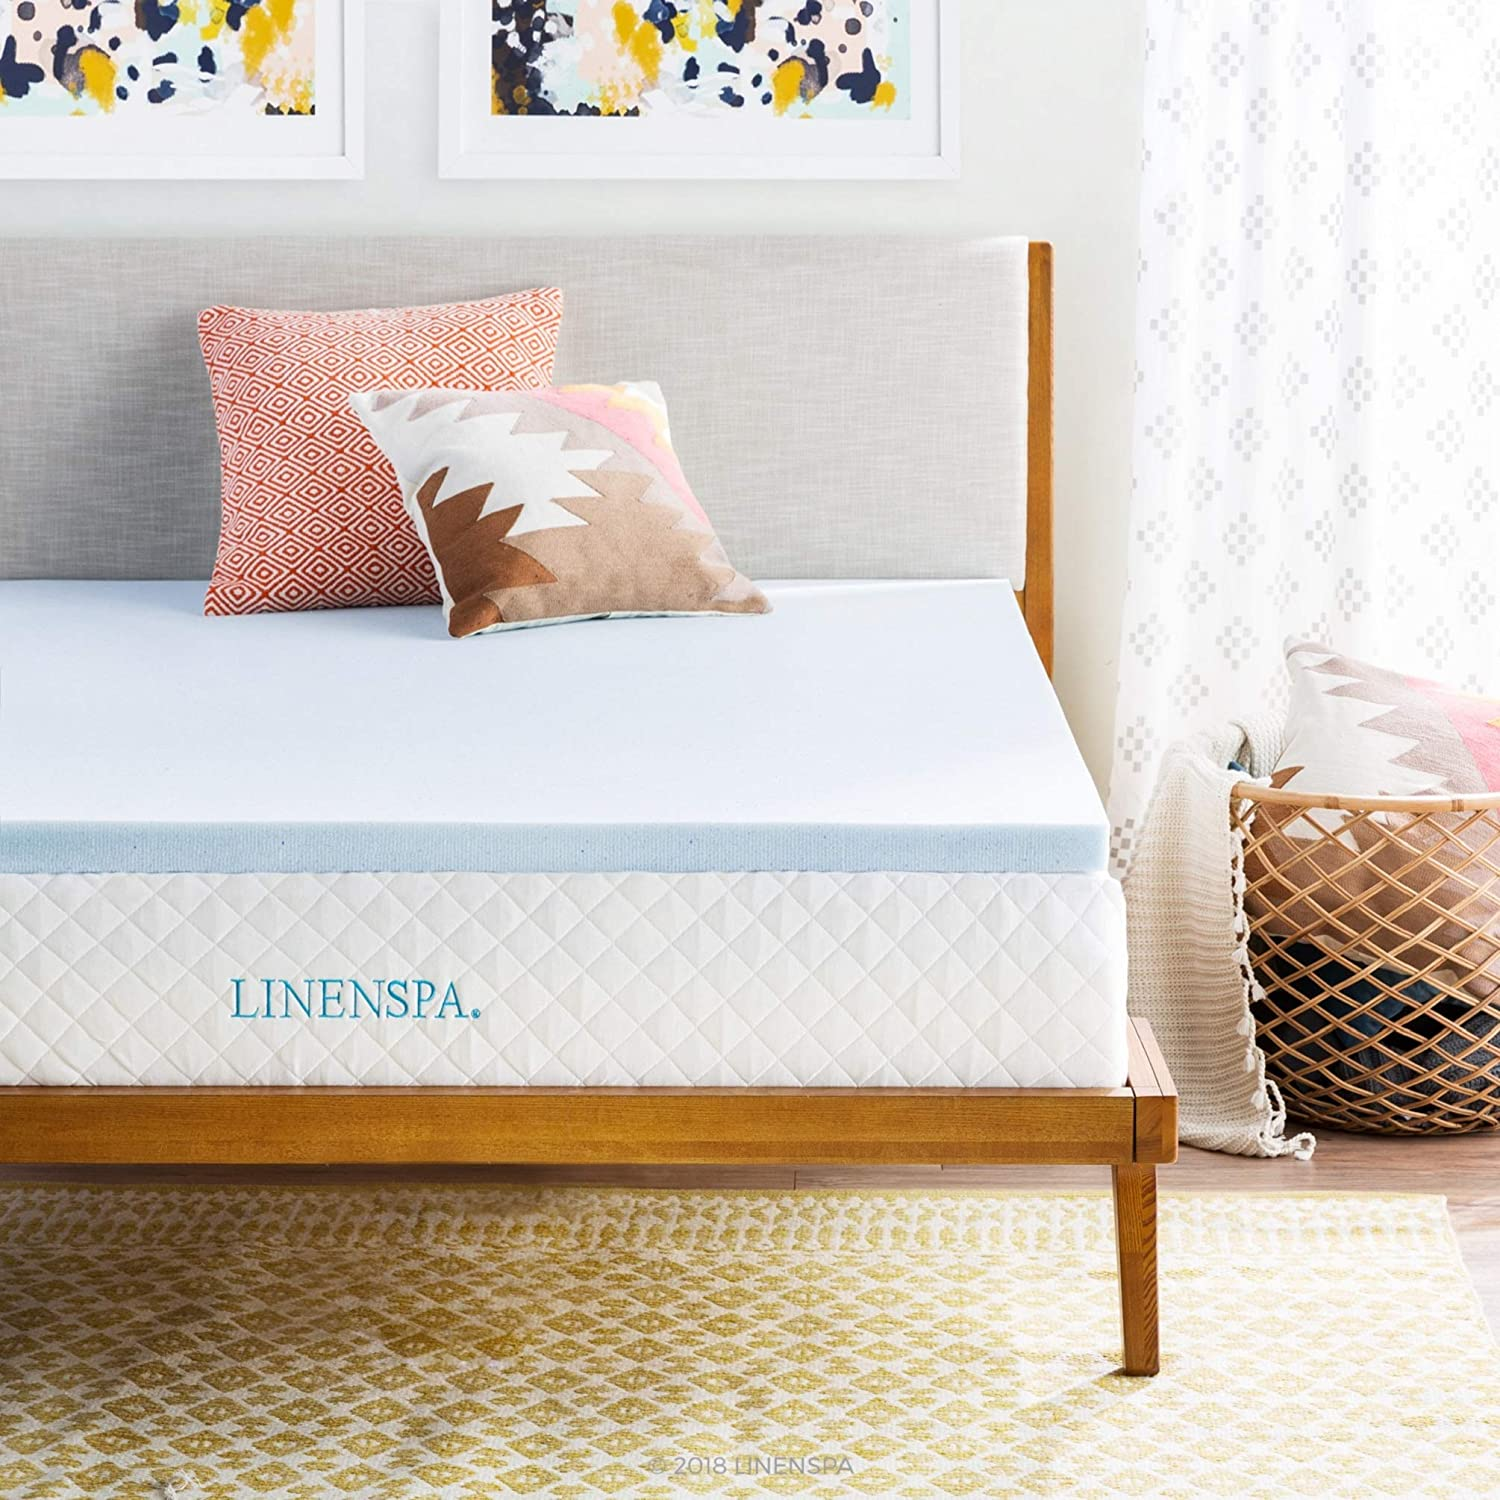 LINENSPA 2 Inch Gel Infused Memory Foam Mattress Topper, Full, Blue: Home & Kitchen